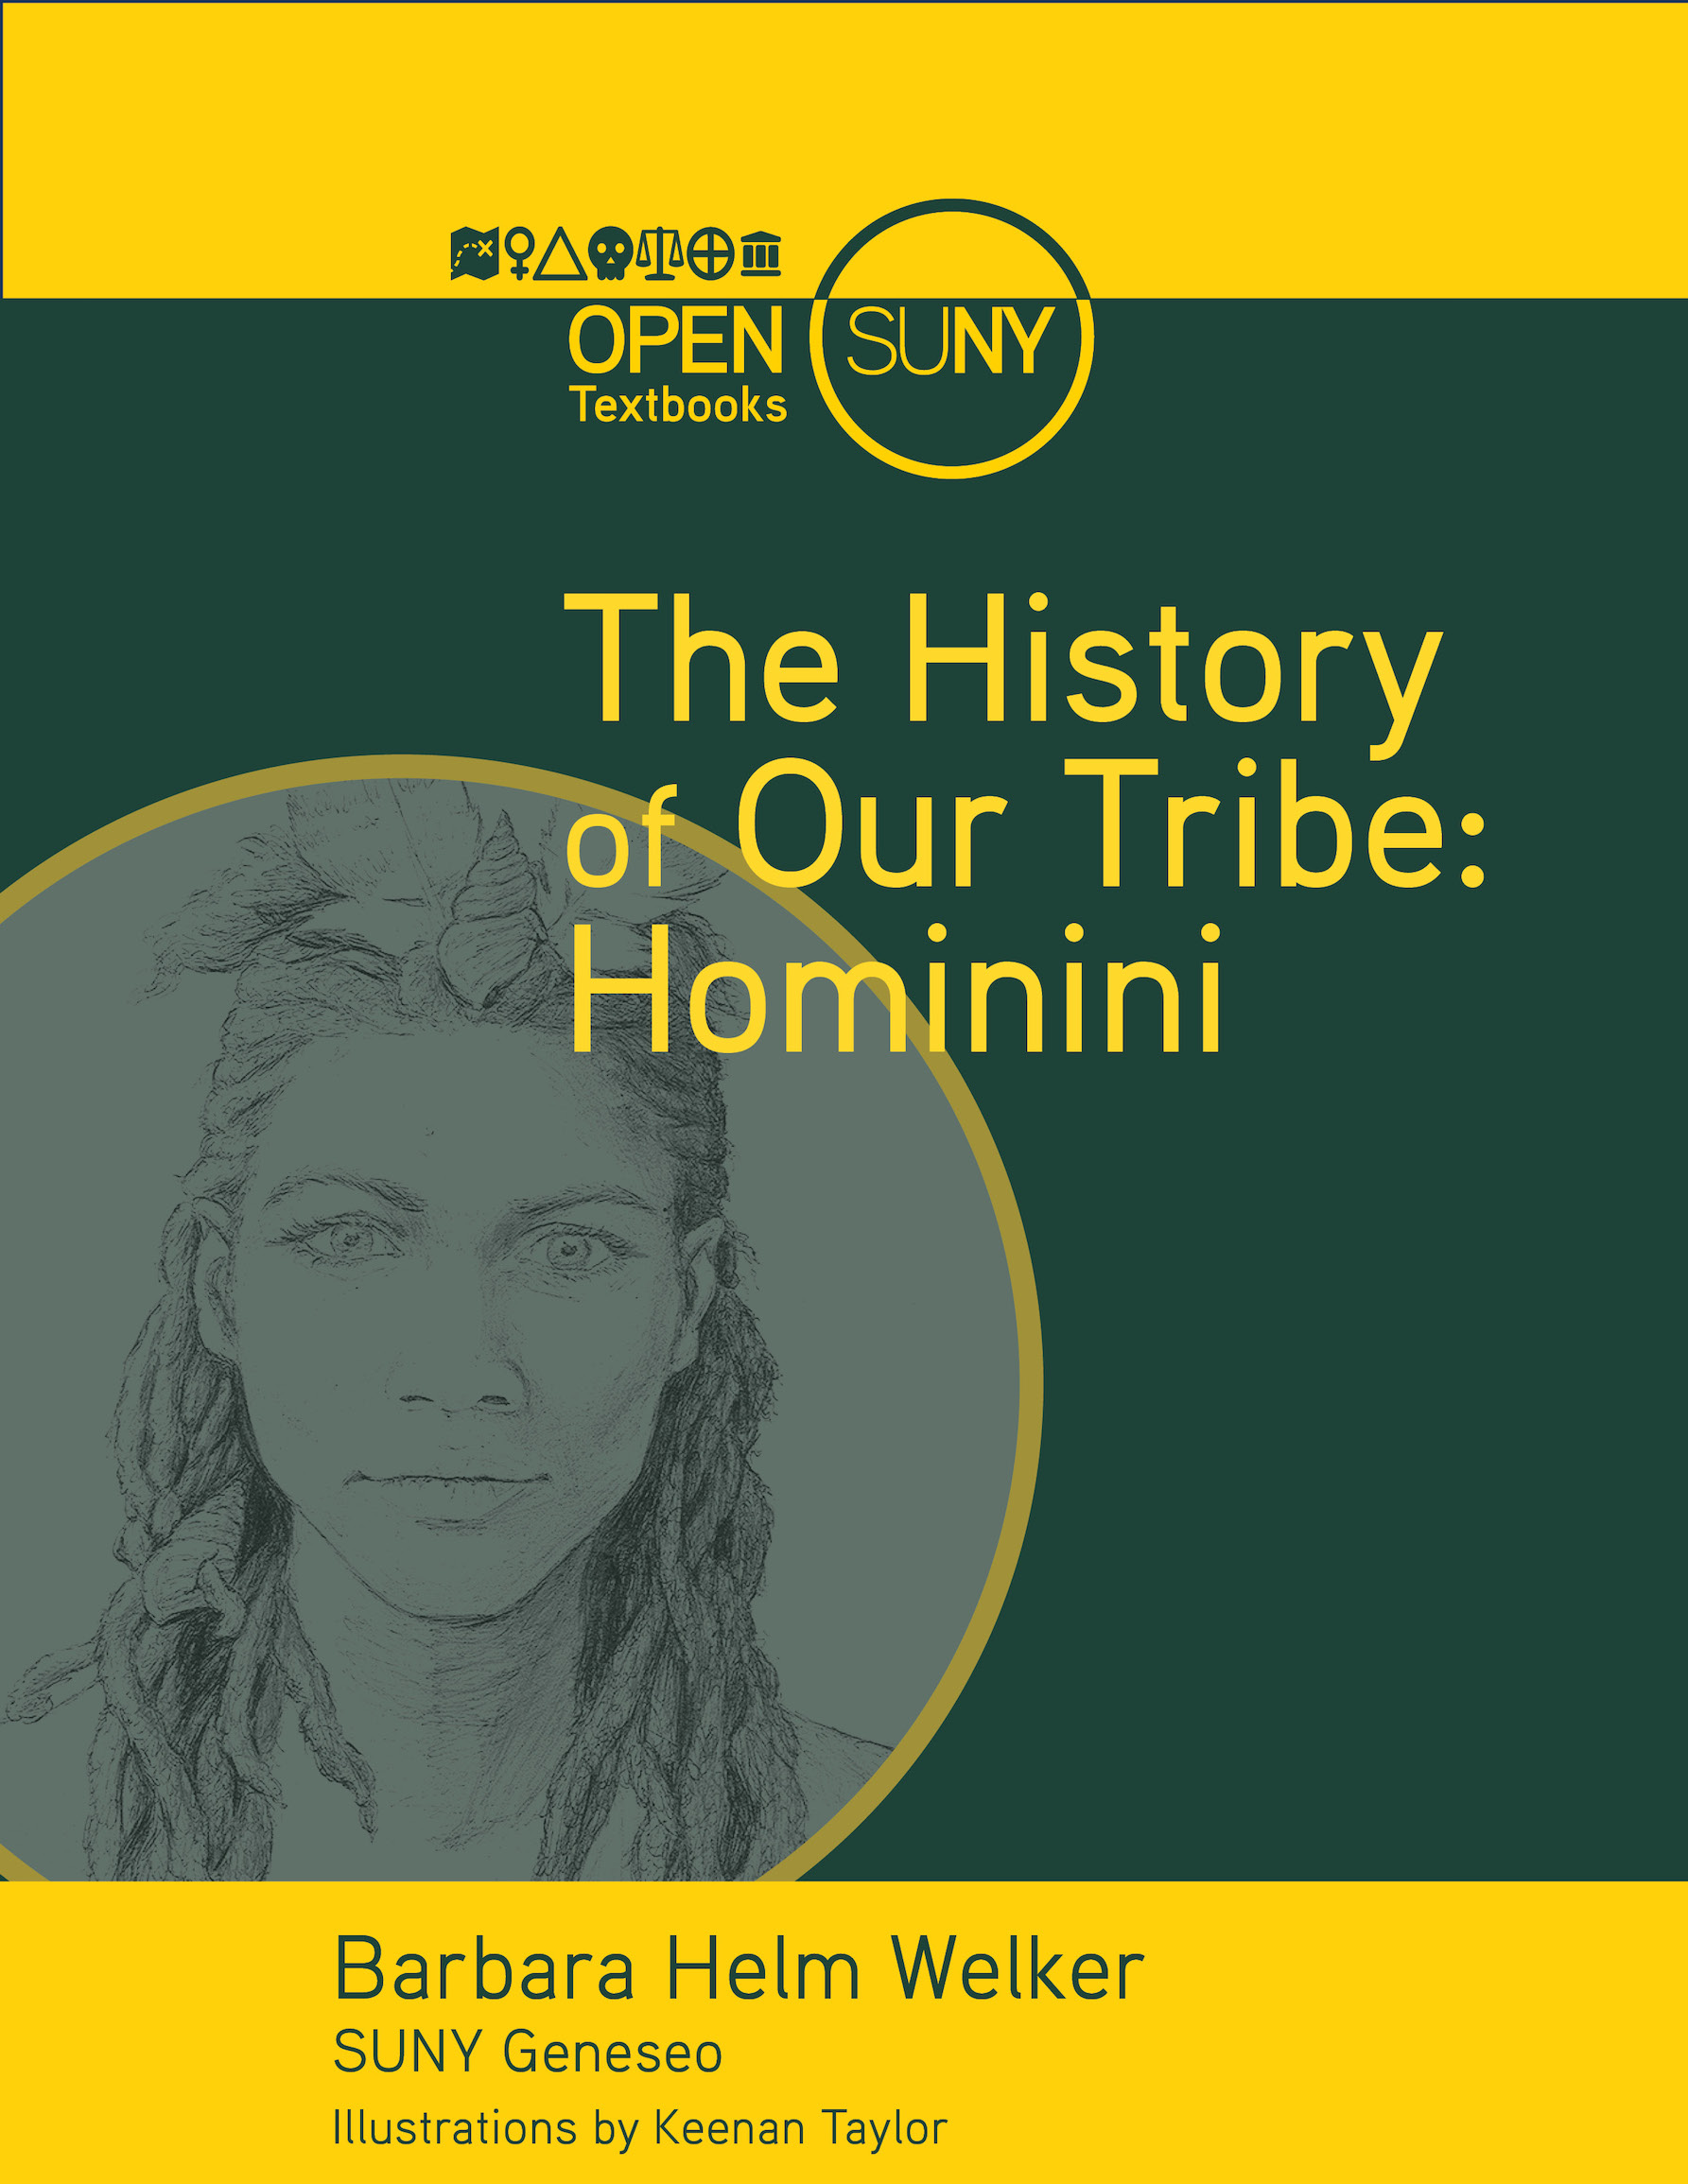 a history of our evolution How humans became human: cassandra turcotte of the center for the advanced study of human evolution considers one of our most important questions human origins is being investigated and understood through evolutionary theory, which sees humans placed with the other great apes on the tree of life.